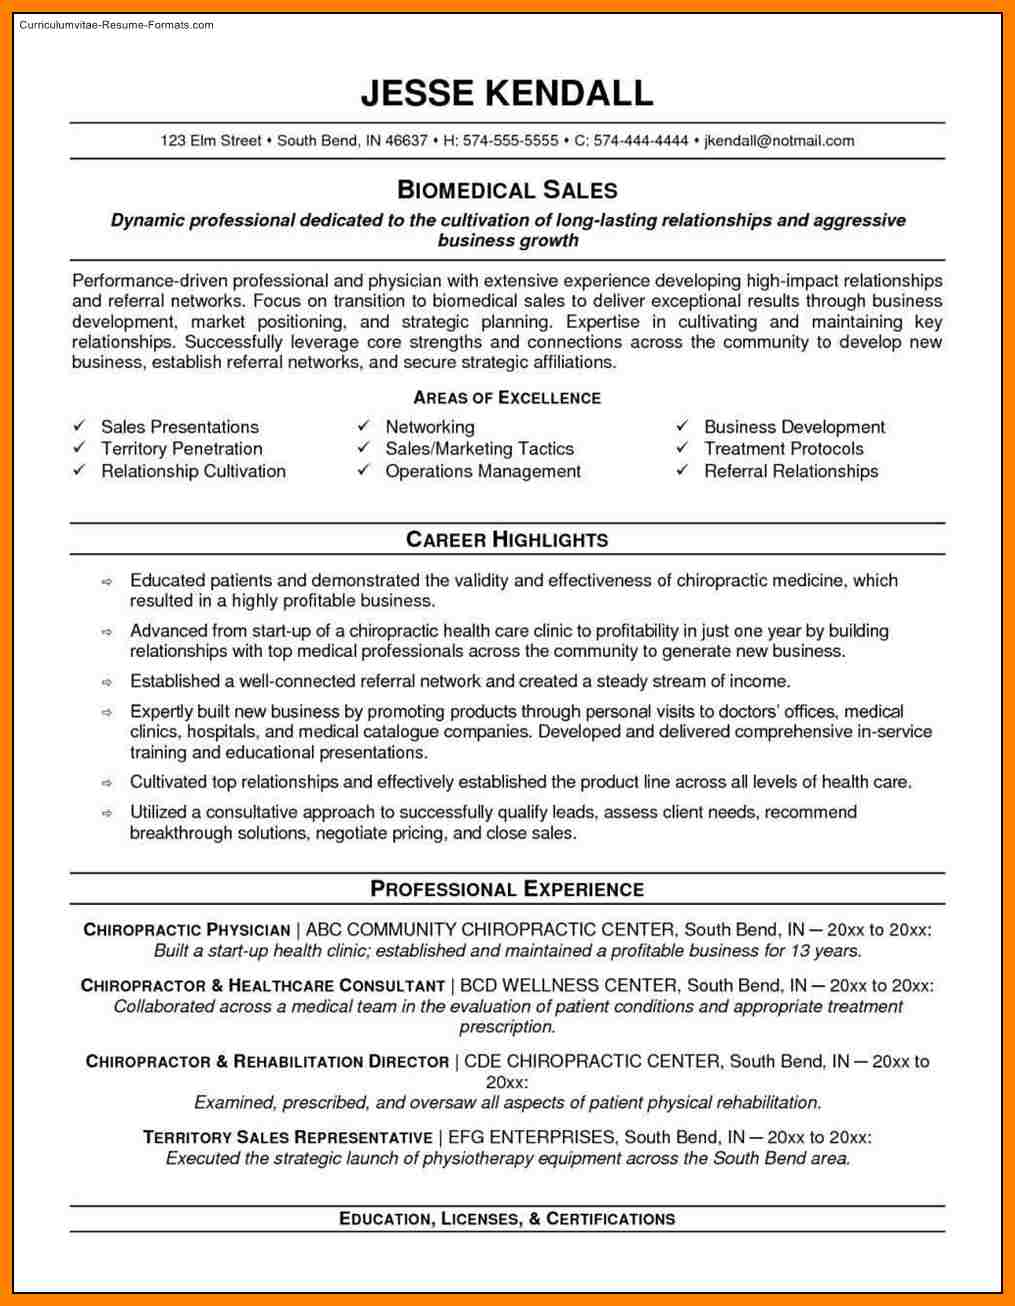 Functional Resume Template Functional Resume Template Free Functional Resume Template Free Free Samples Examples Format Free functional resume template|wikiresume.com